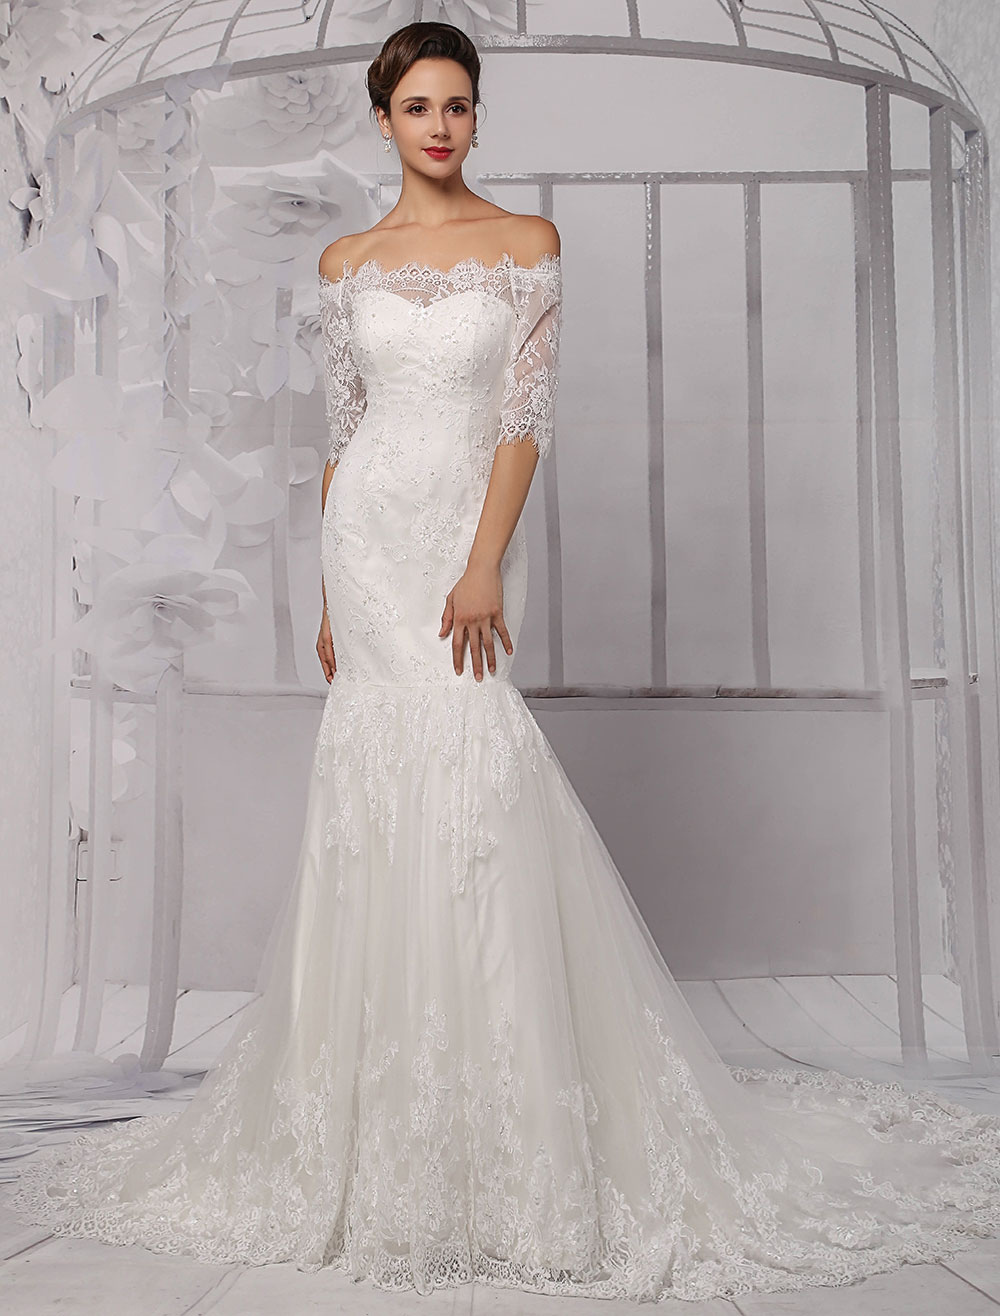 Half sleeve off the shoulder lace wedding dress in trumpet for Wedding dresses with half sleeves